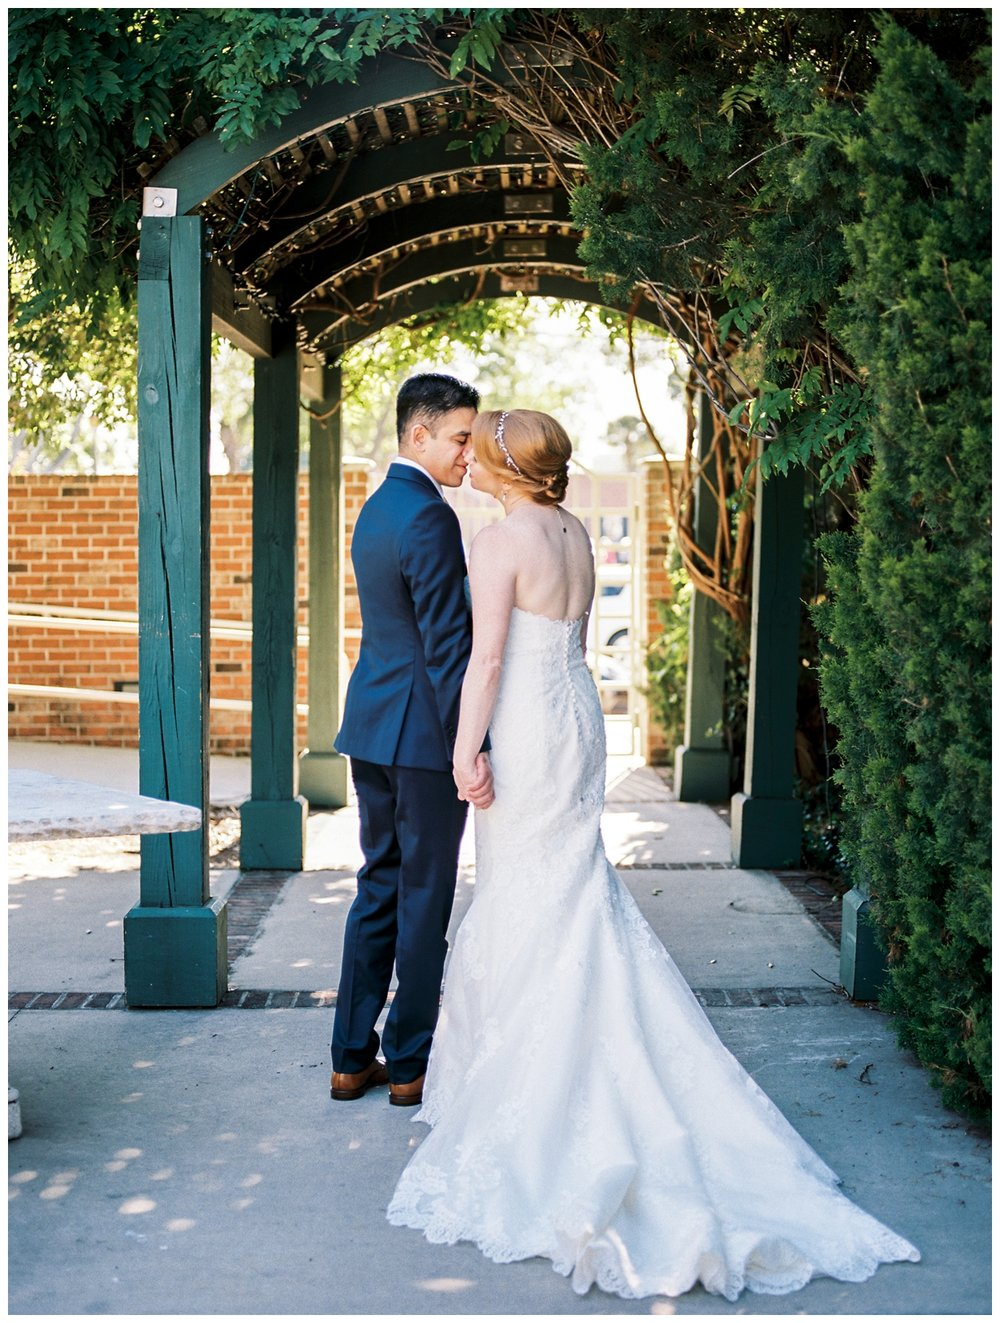 spring pensacola florida wedding at 5eleven Palafox by fine art washington dc and destination wedding photographer Lissa Ryan Photography